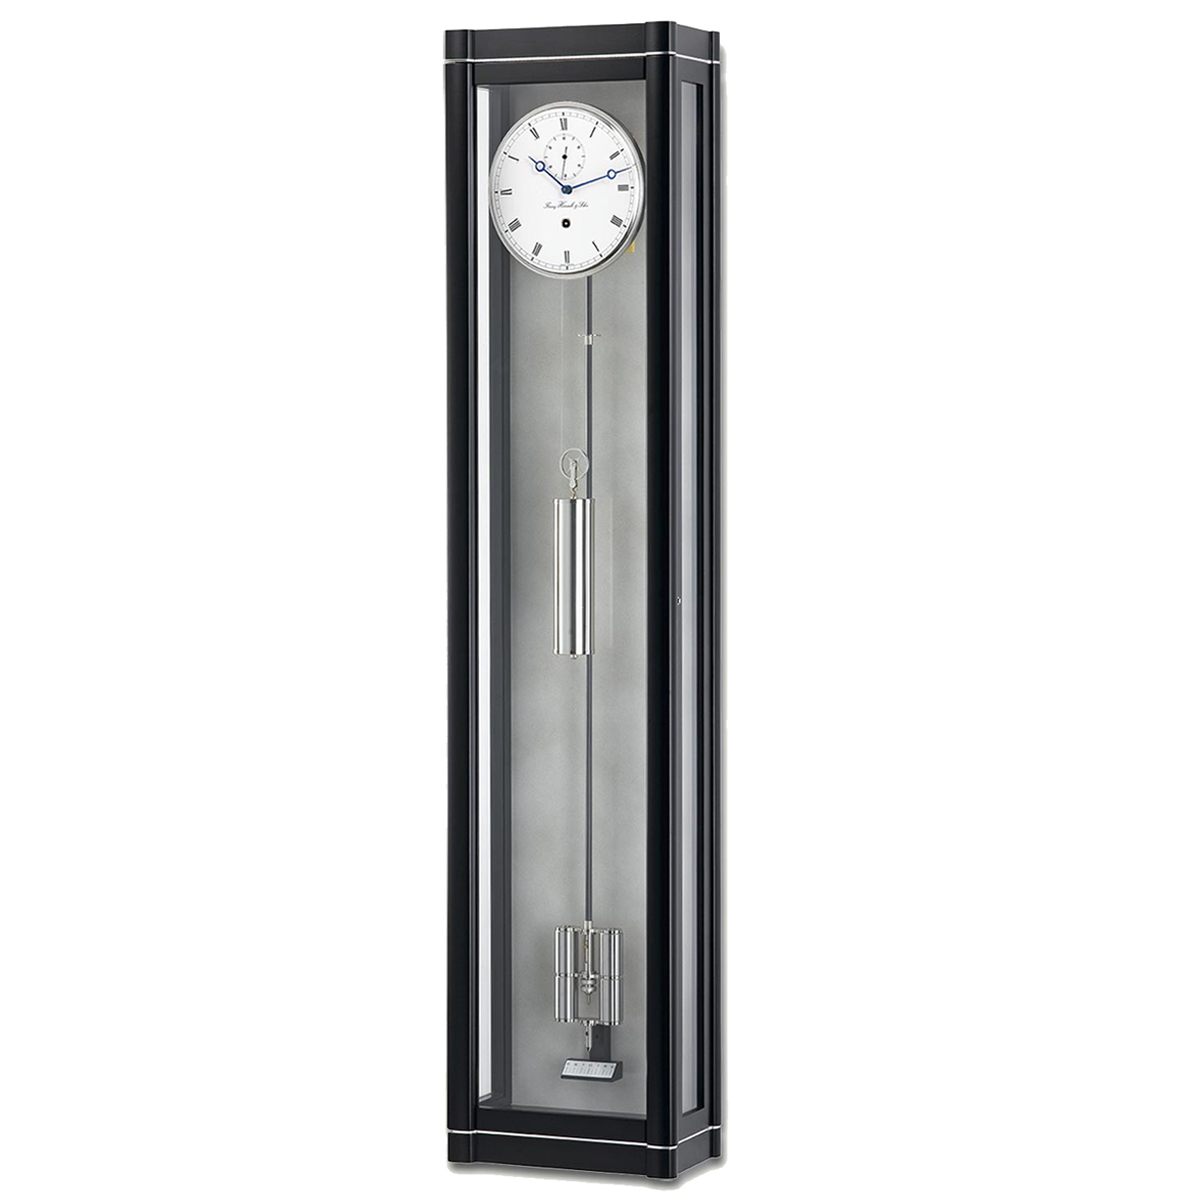 Hermle KINGSLAND-70961-740761 Regulator Wall Clock